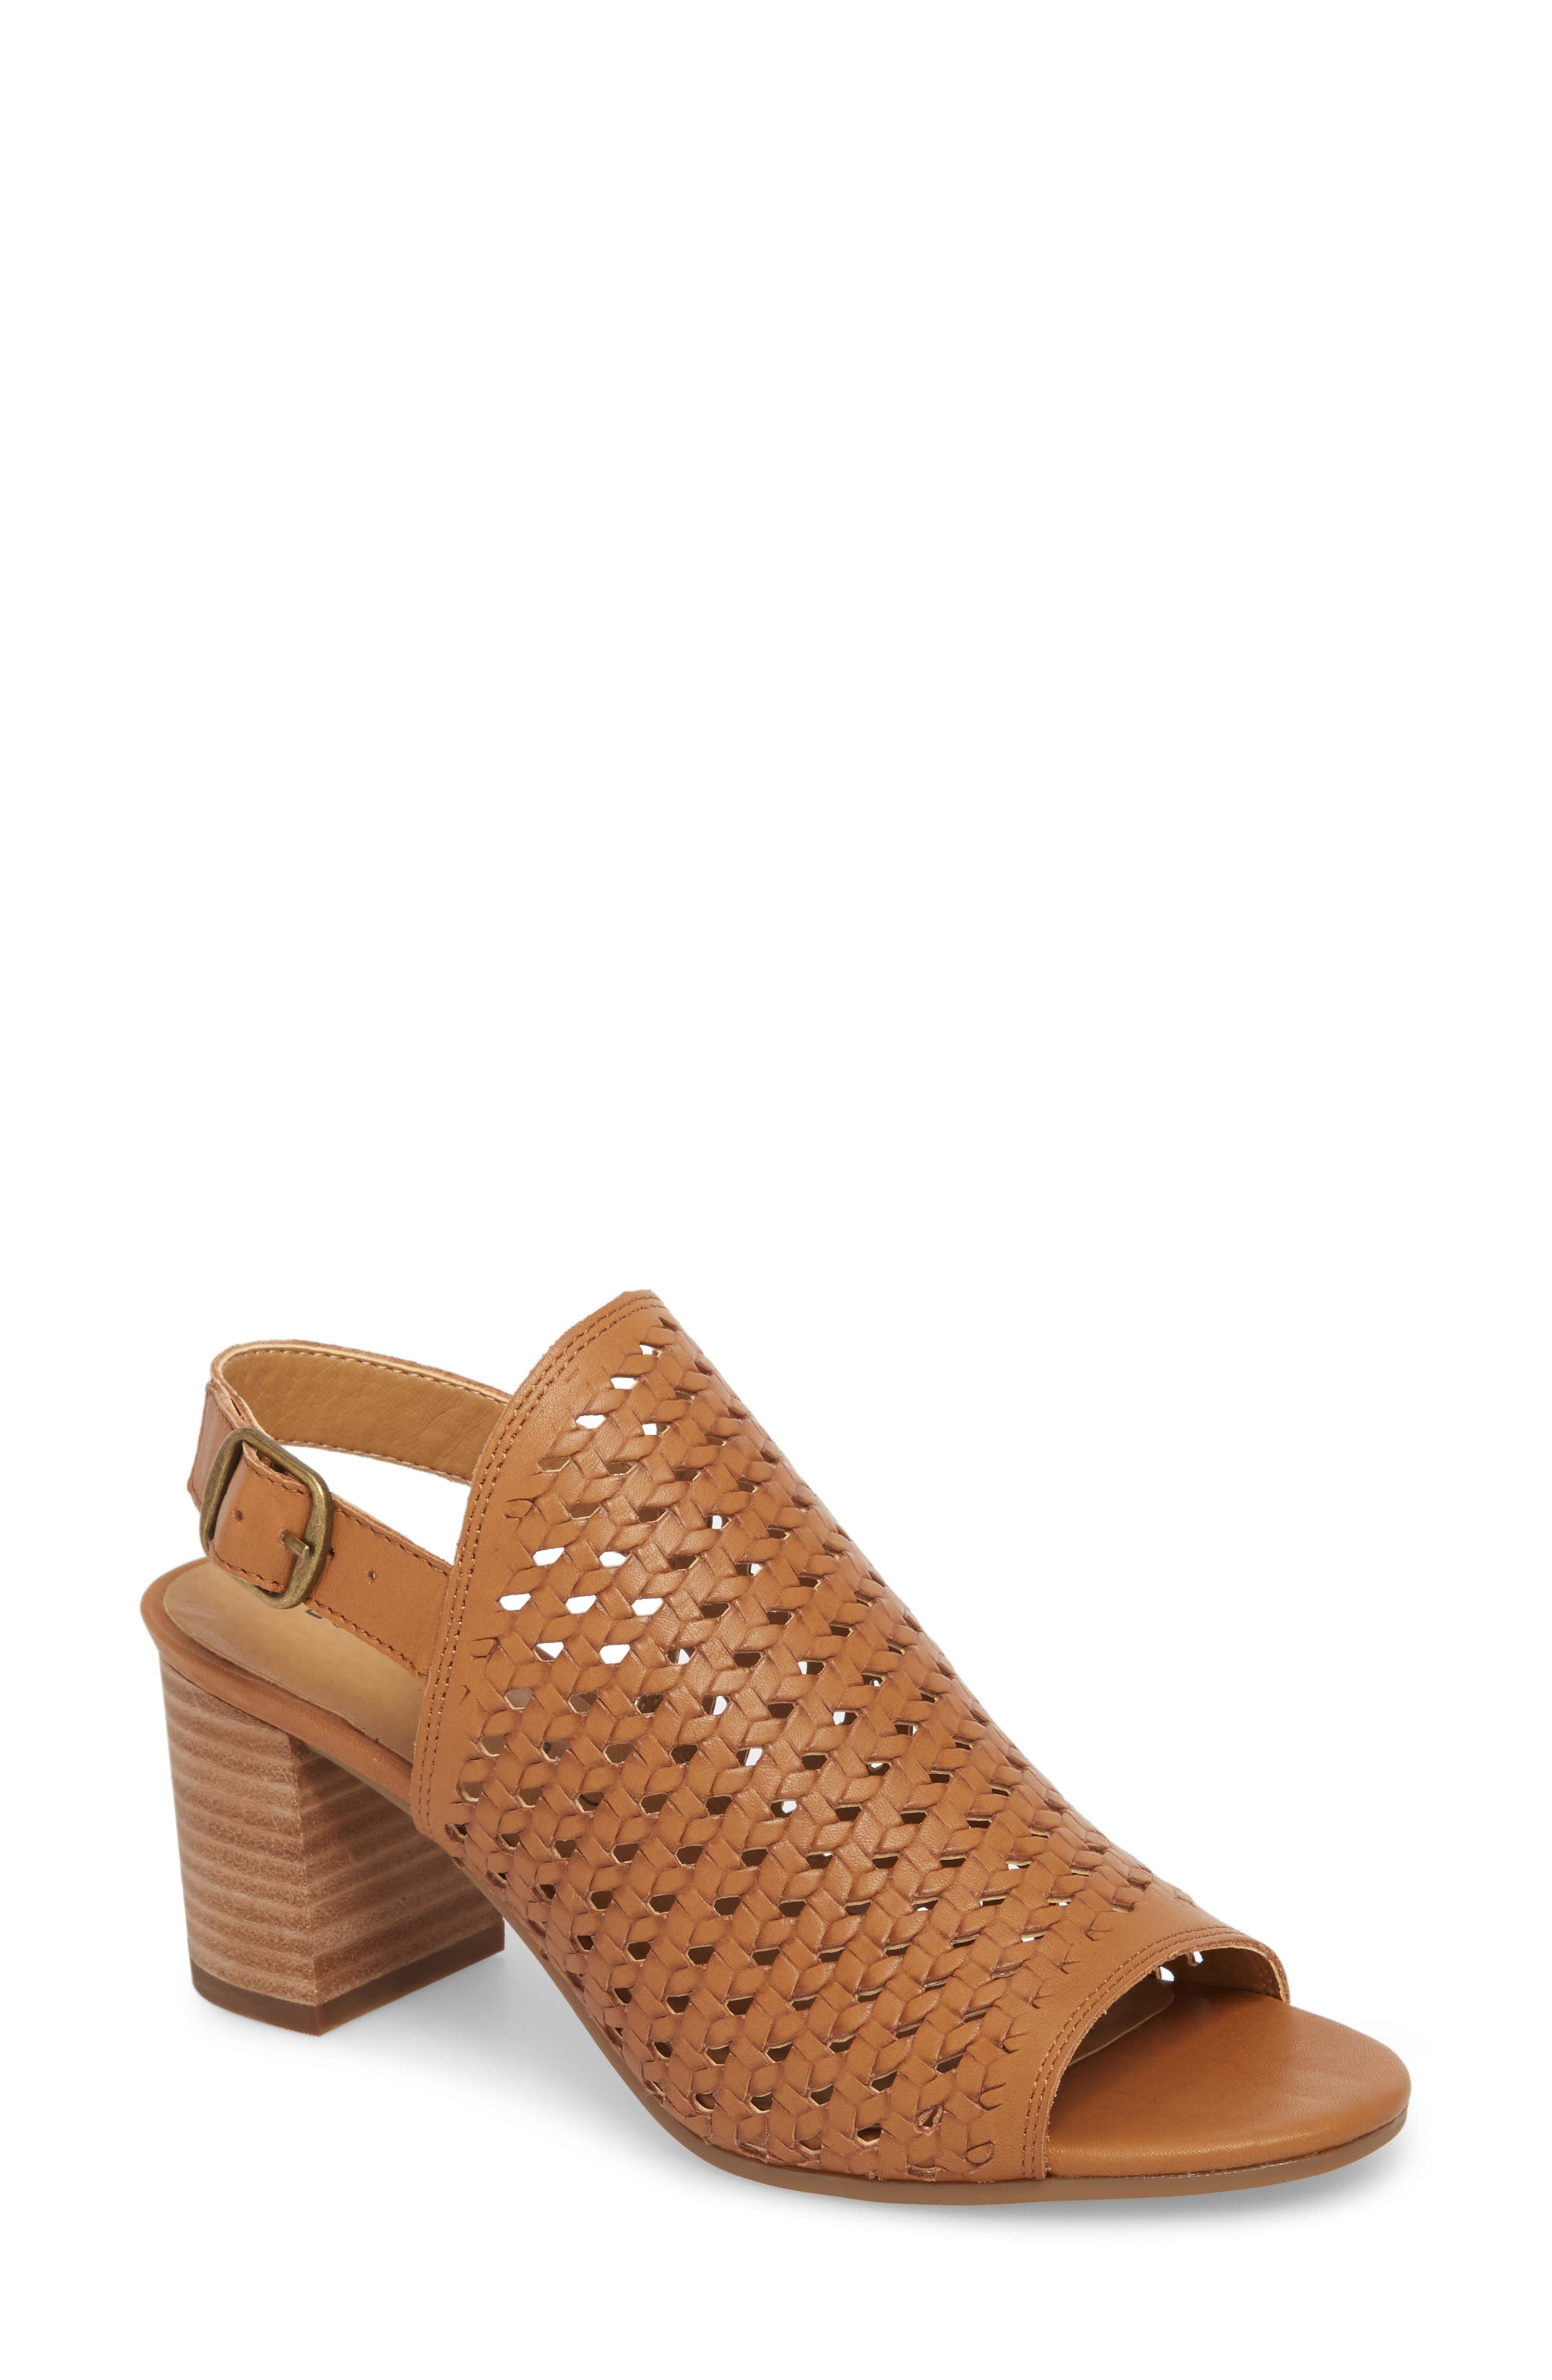 Verazino Sandal,                         Main,                         color, Macaroon Leather